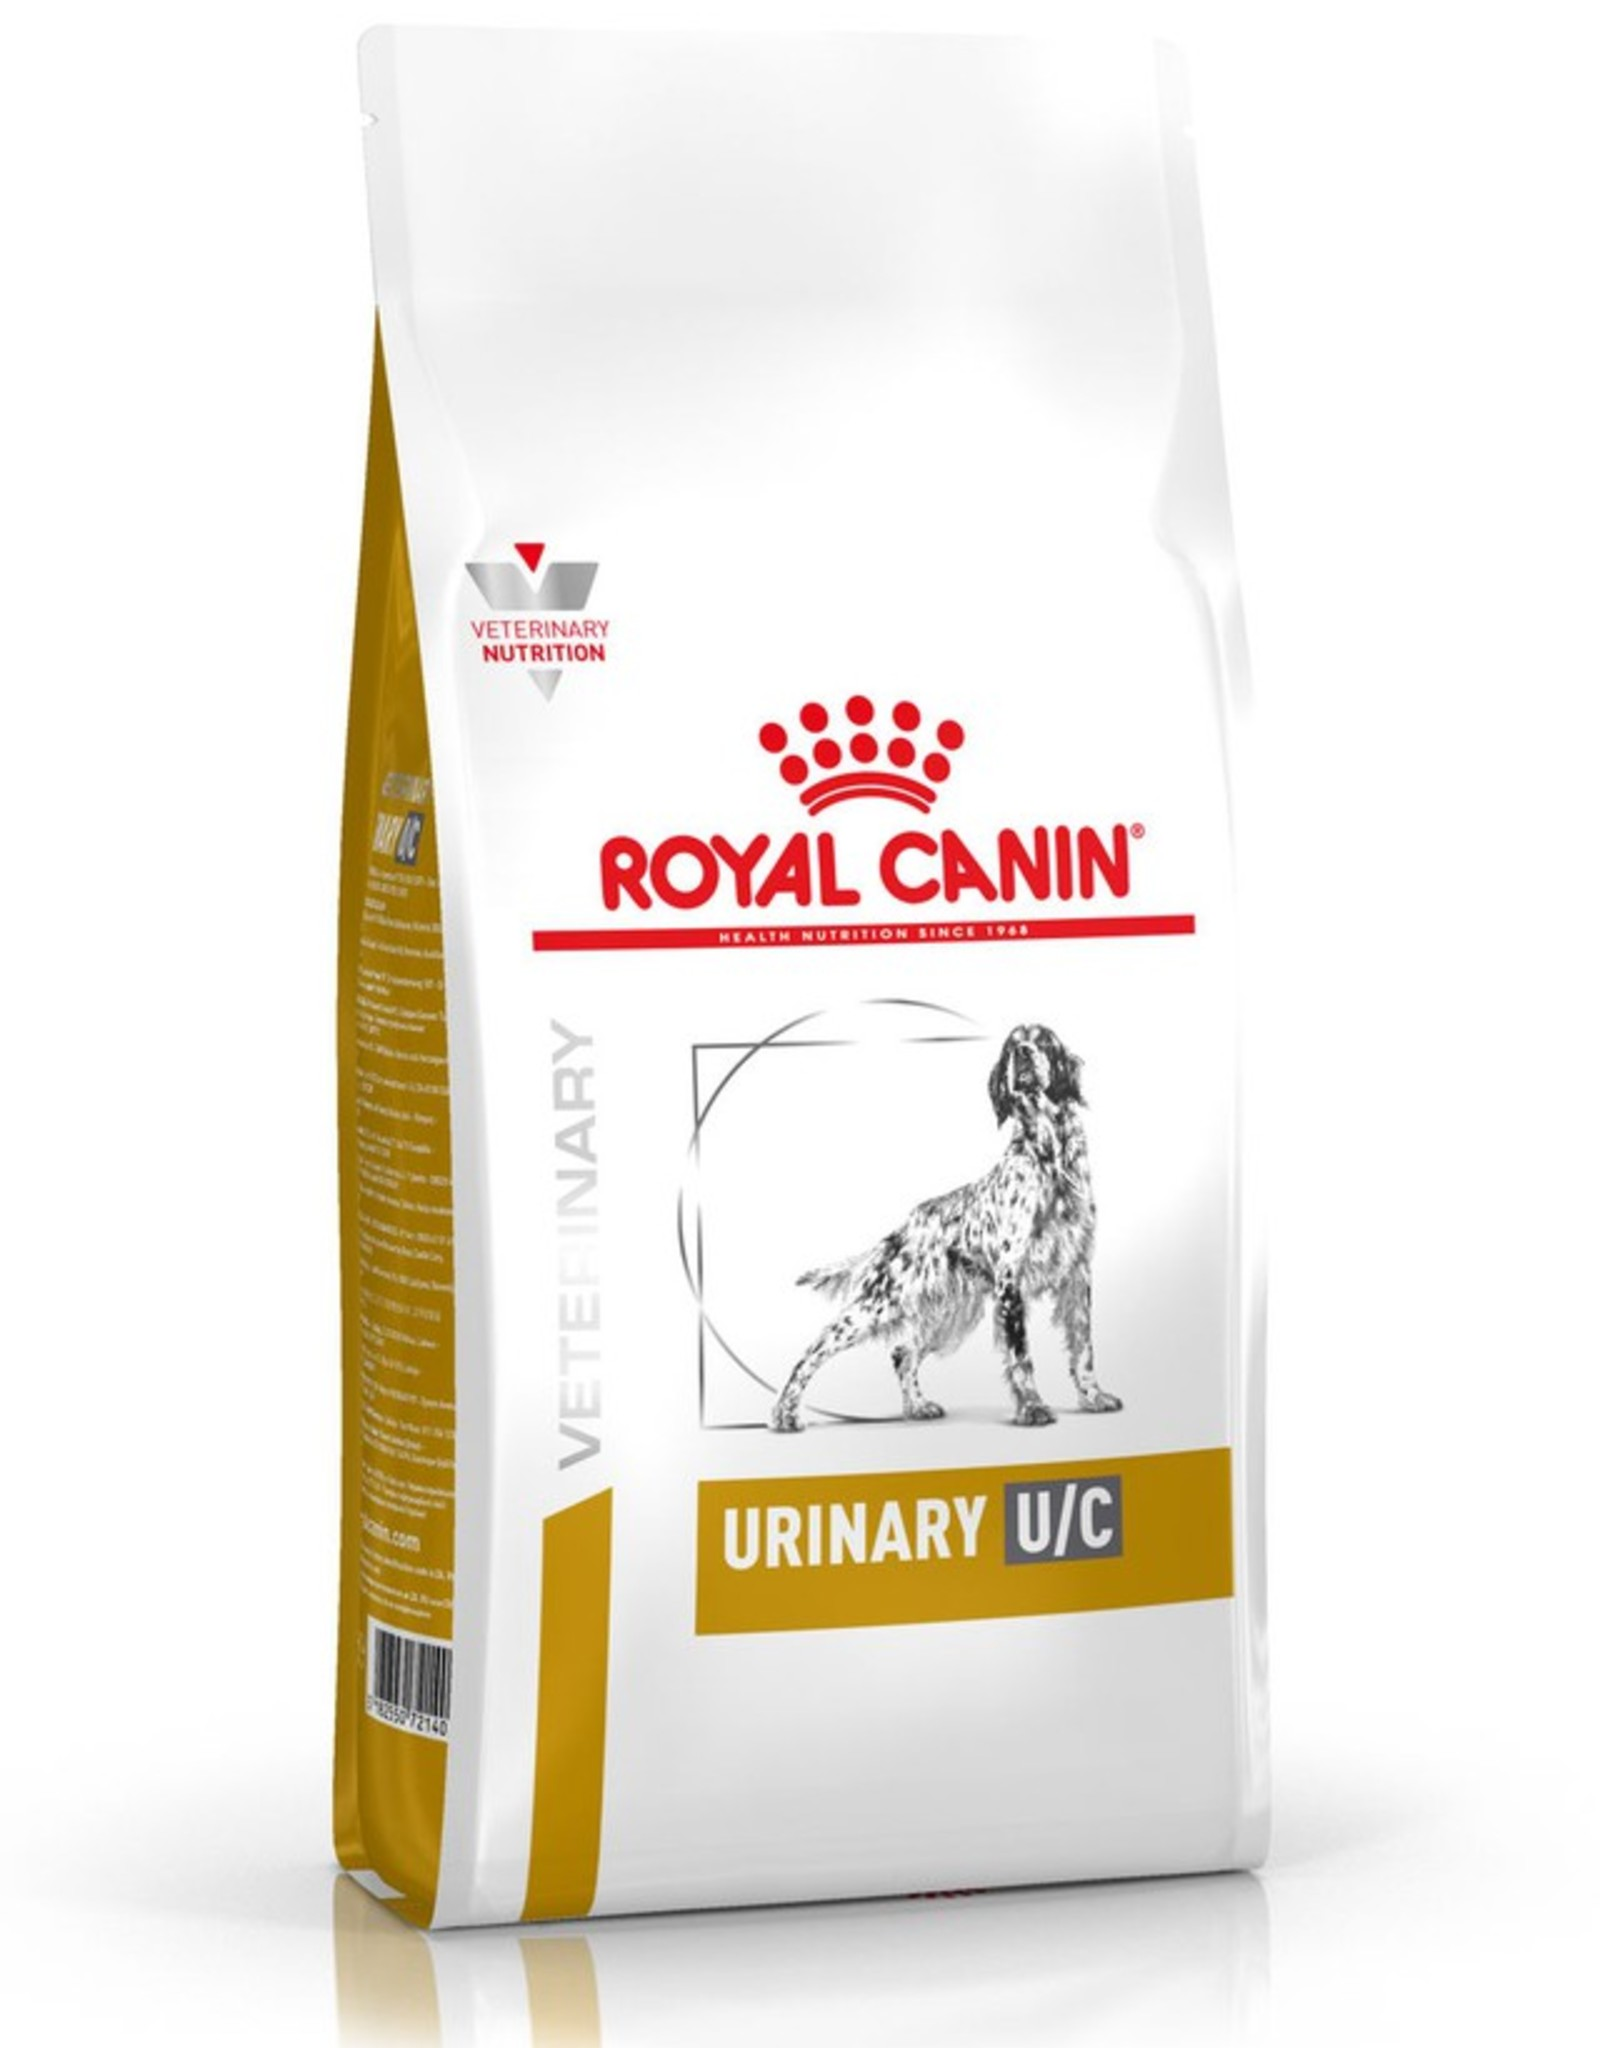 Royal Canin Royal Canin Urinary U/c Low Proteine Chien 7,5kg